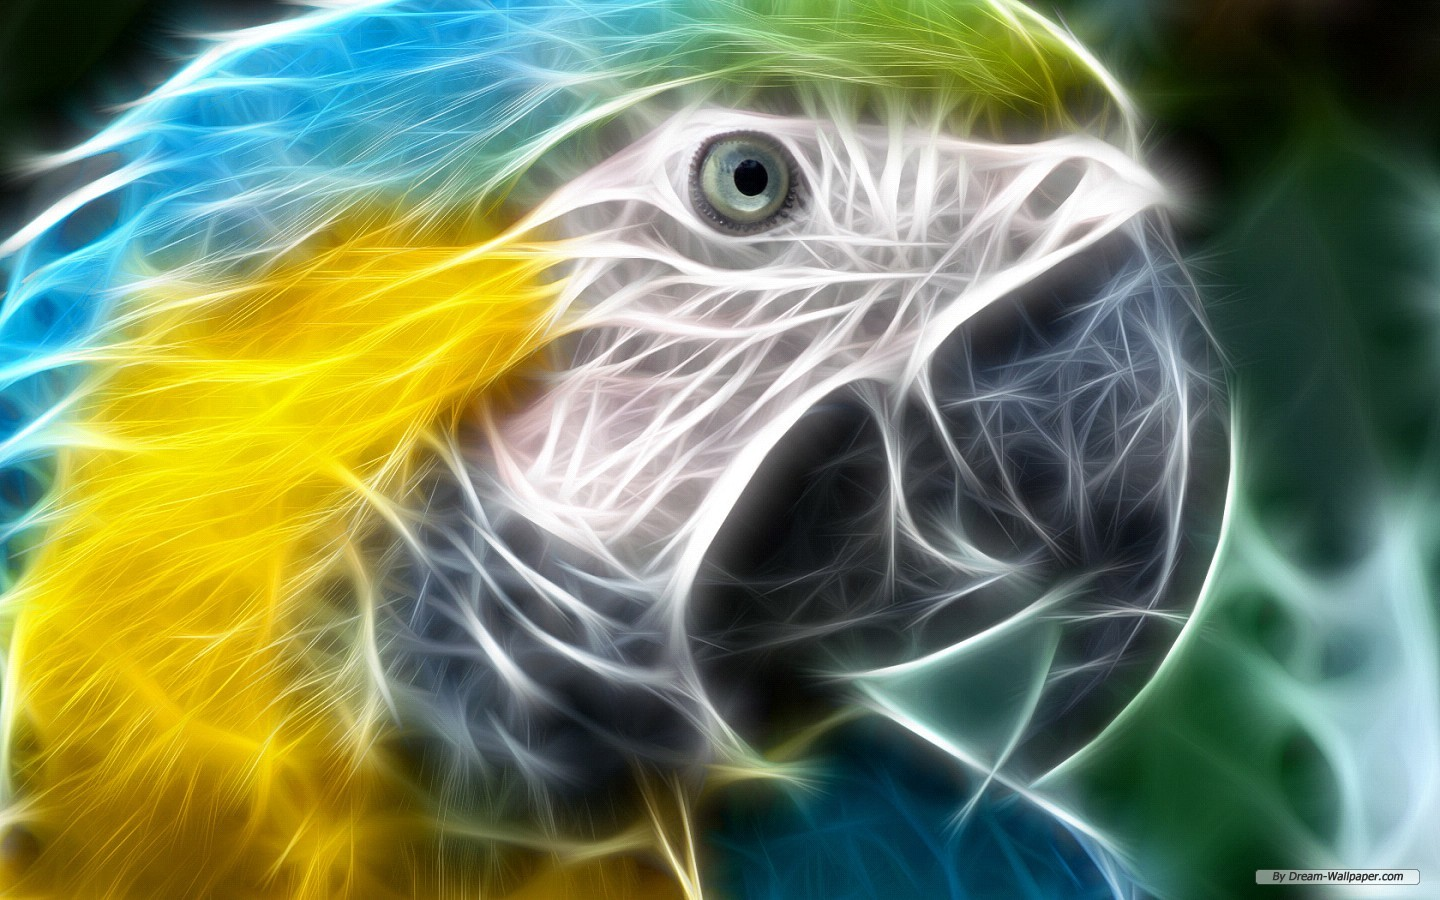 Cool Animal Wallpapers  Android Apps on Google Play 1440x900